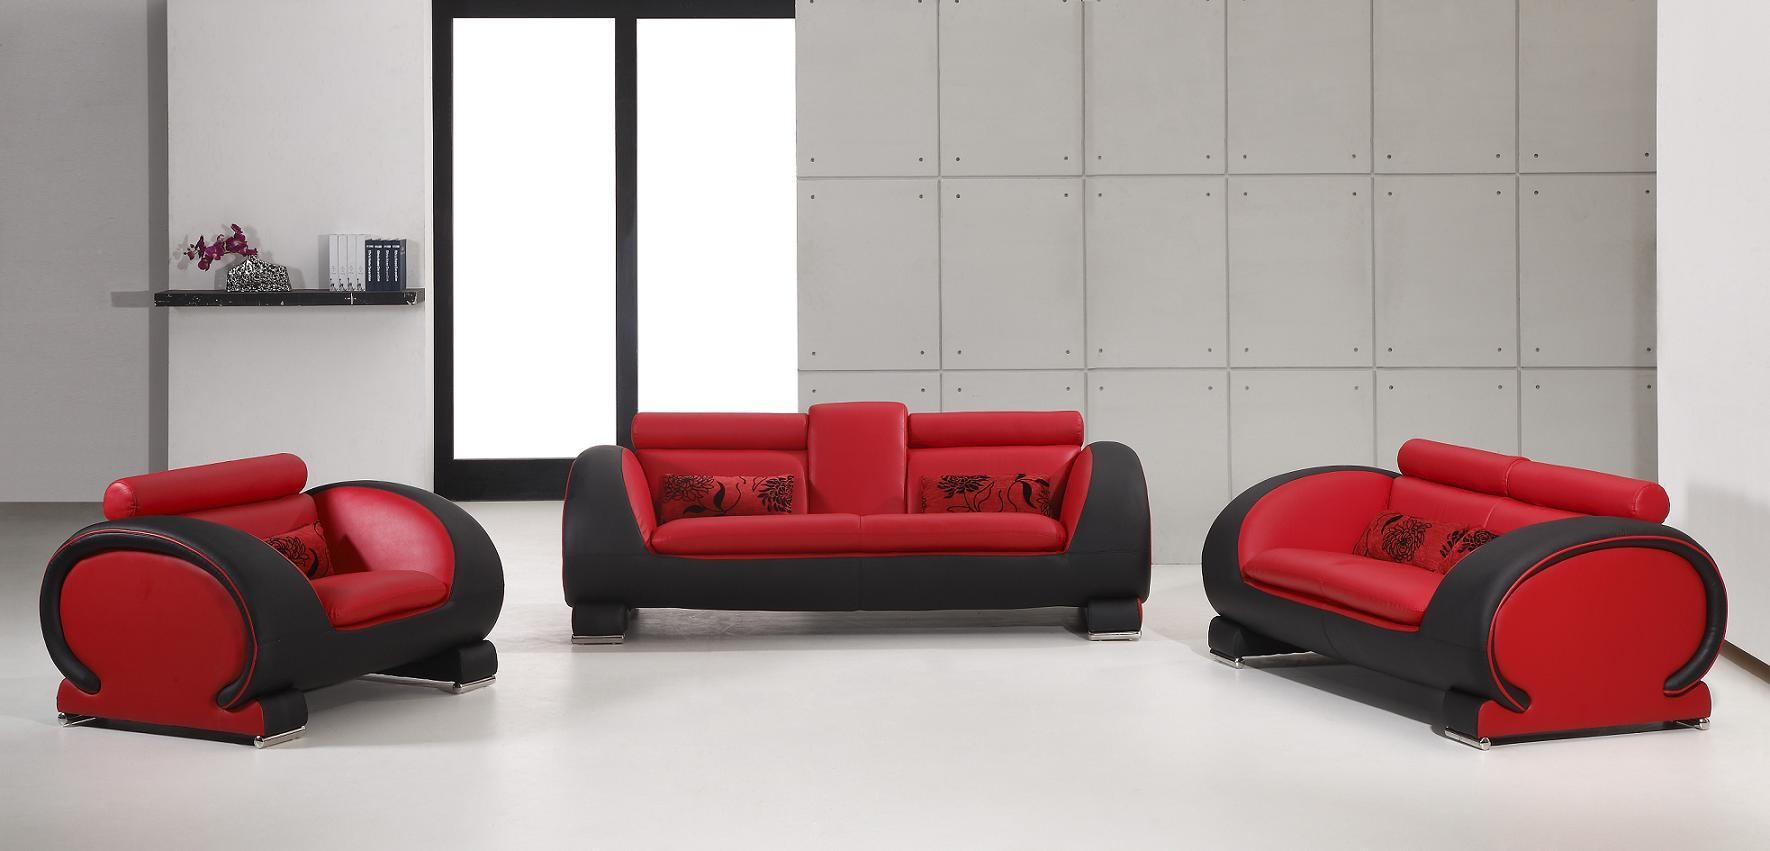 black and red sofa bed denver leather jobb futuristisk italienske sofaer mørke flytende hyller